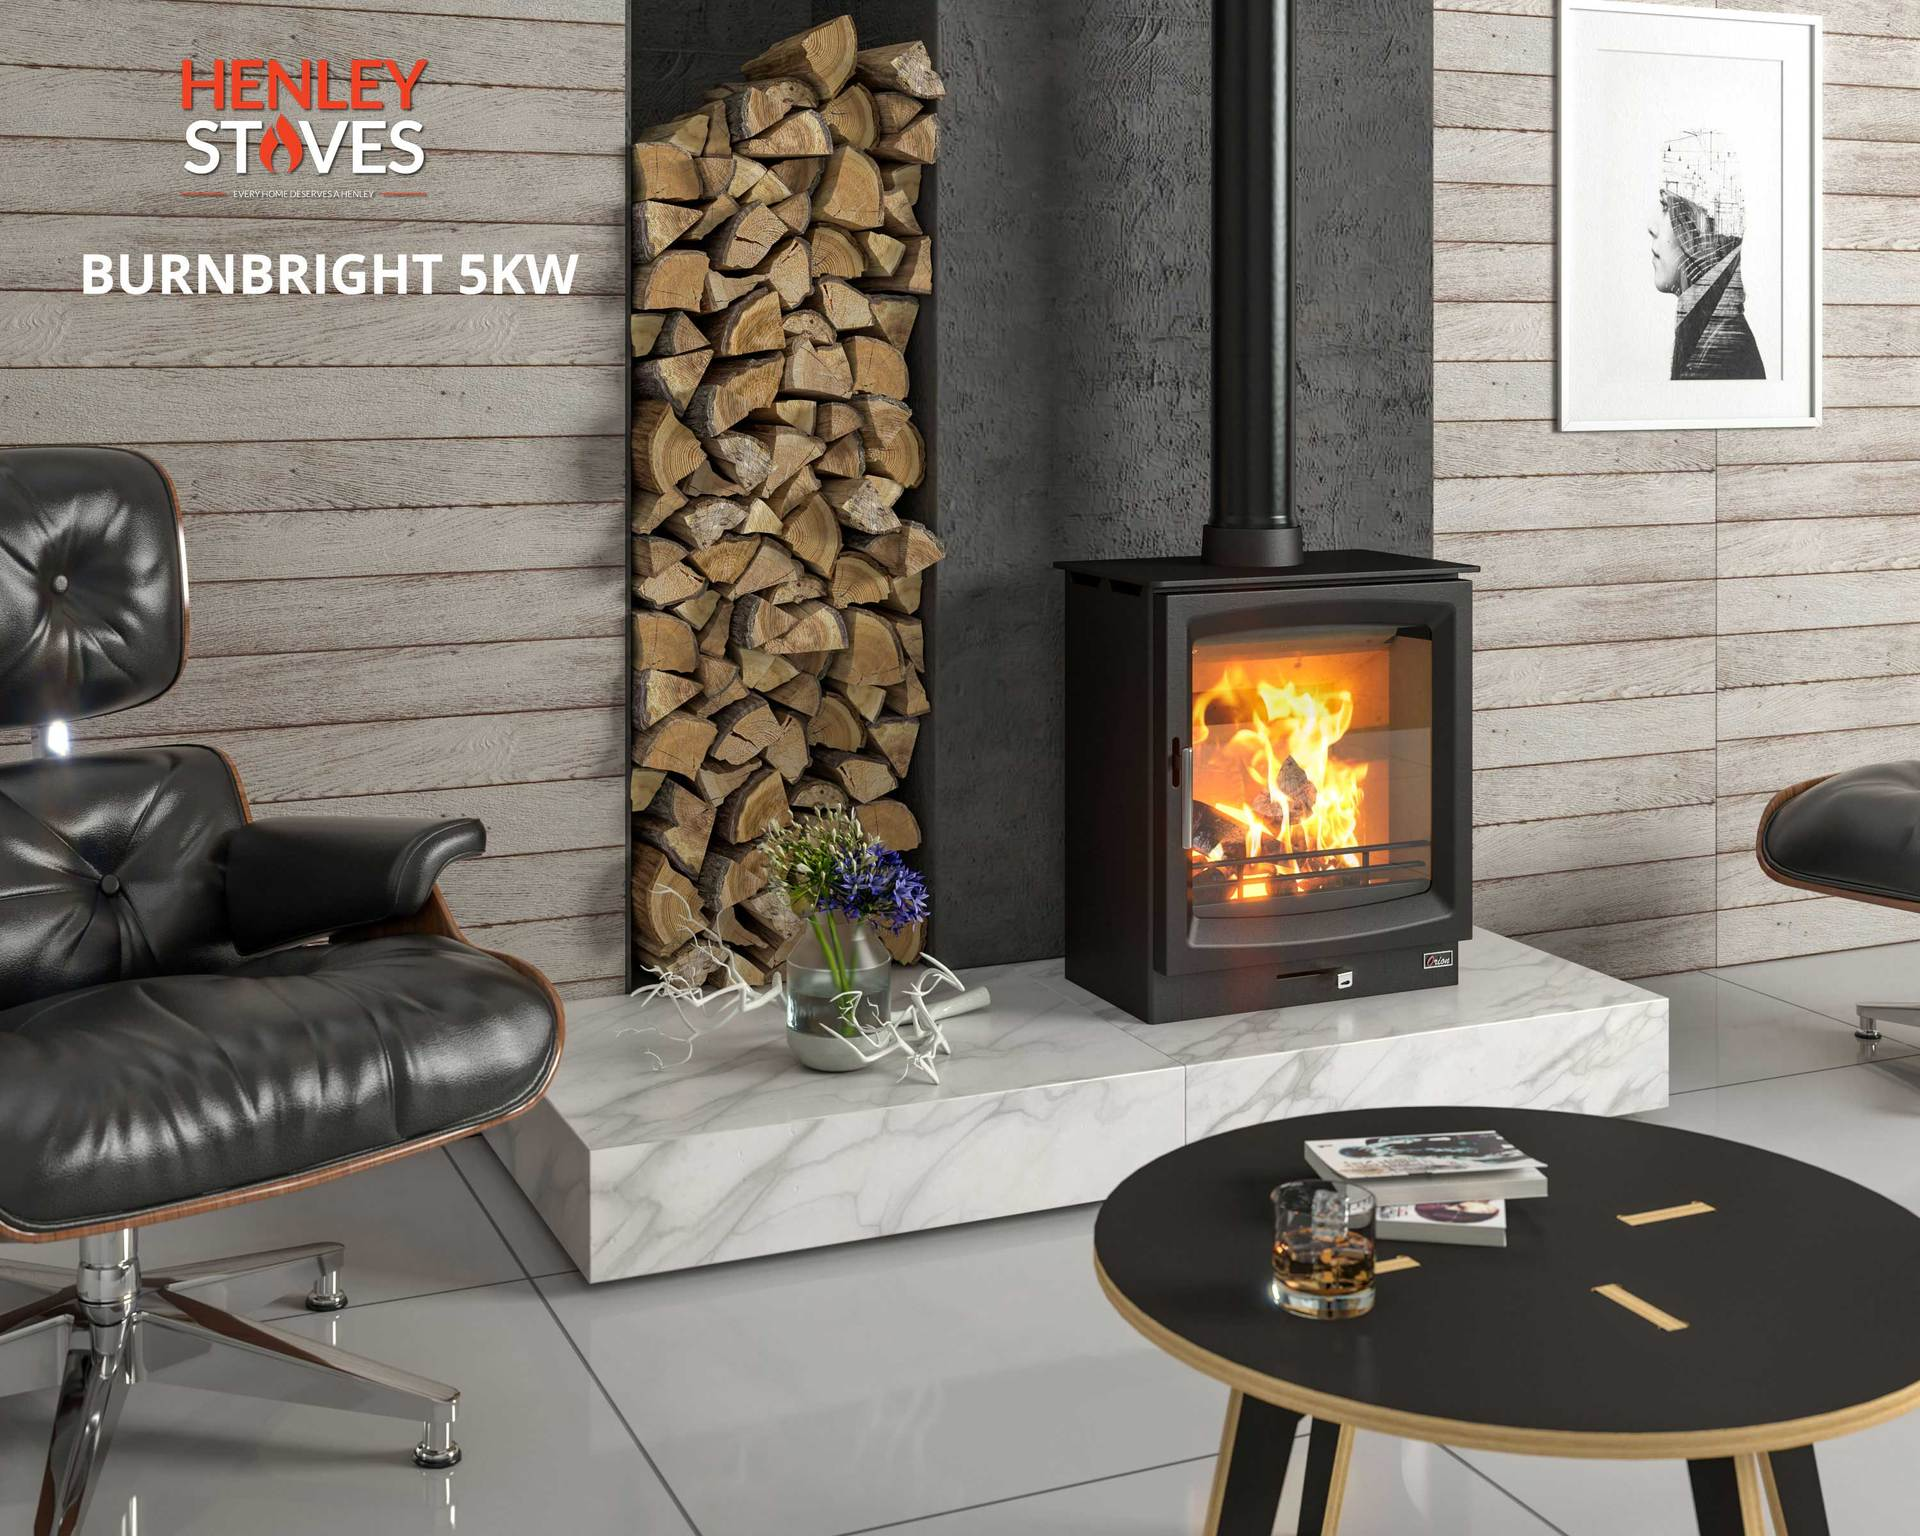 https://www.stovesworld.com/collections/multifuel-stoves/products/worcester-bosch-hanbury-5kw